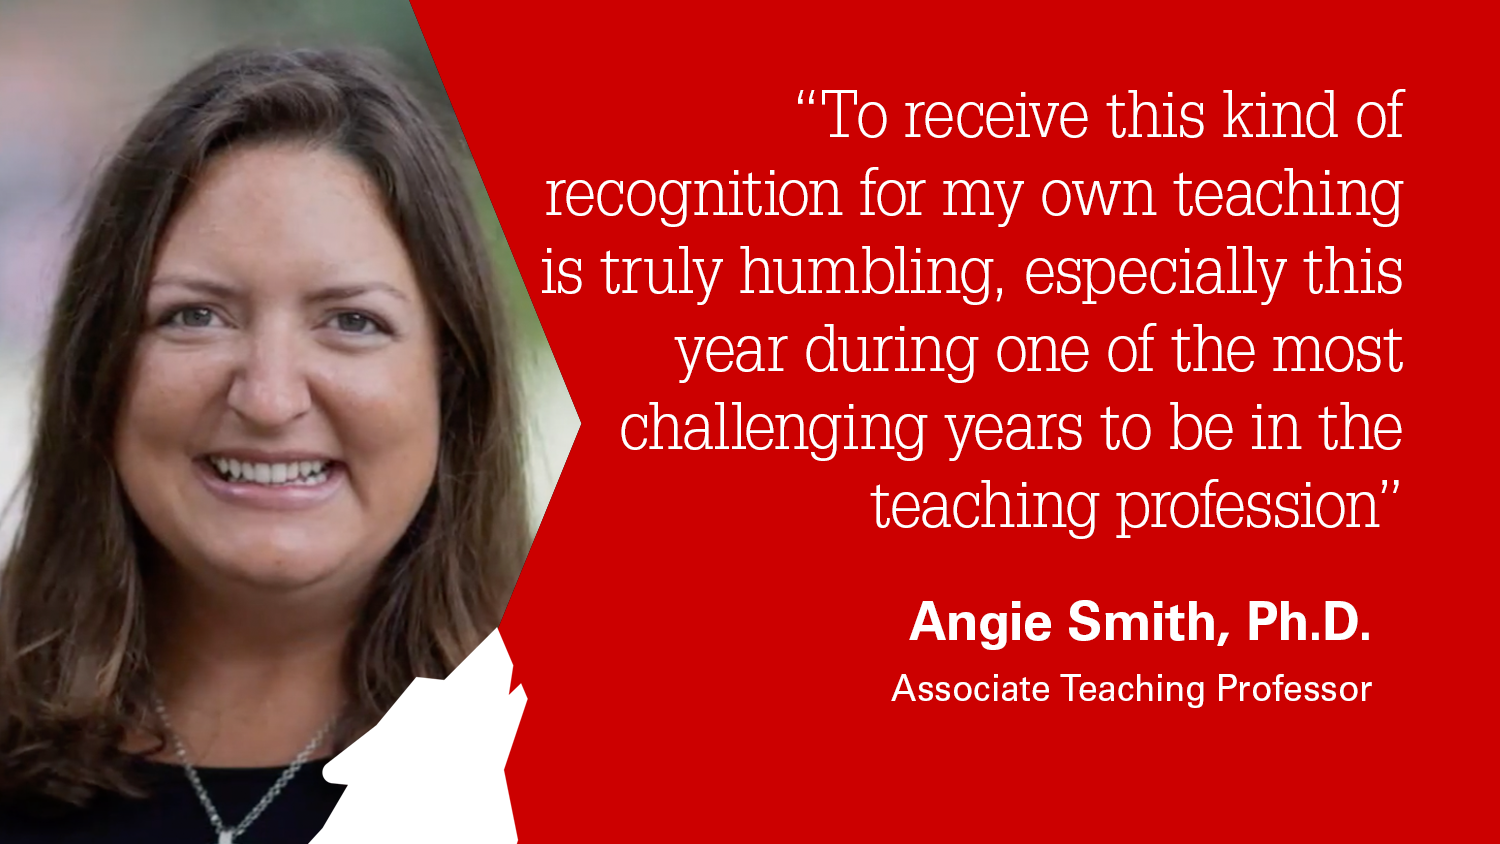 NC State College of Education Associate Teaching Professor Angie Smith, Ph.D. won the university's Outstanding Teaching Award